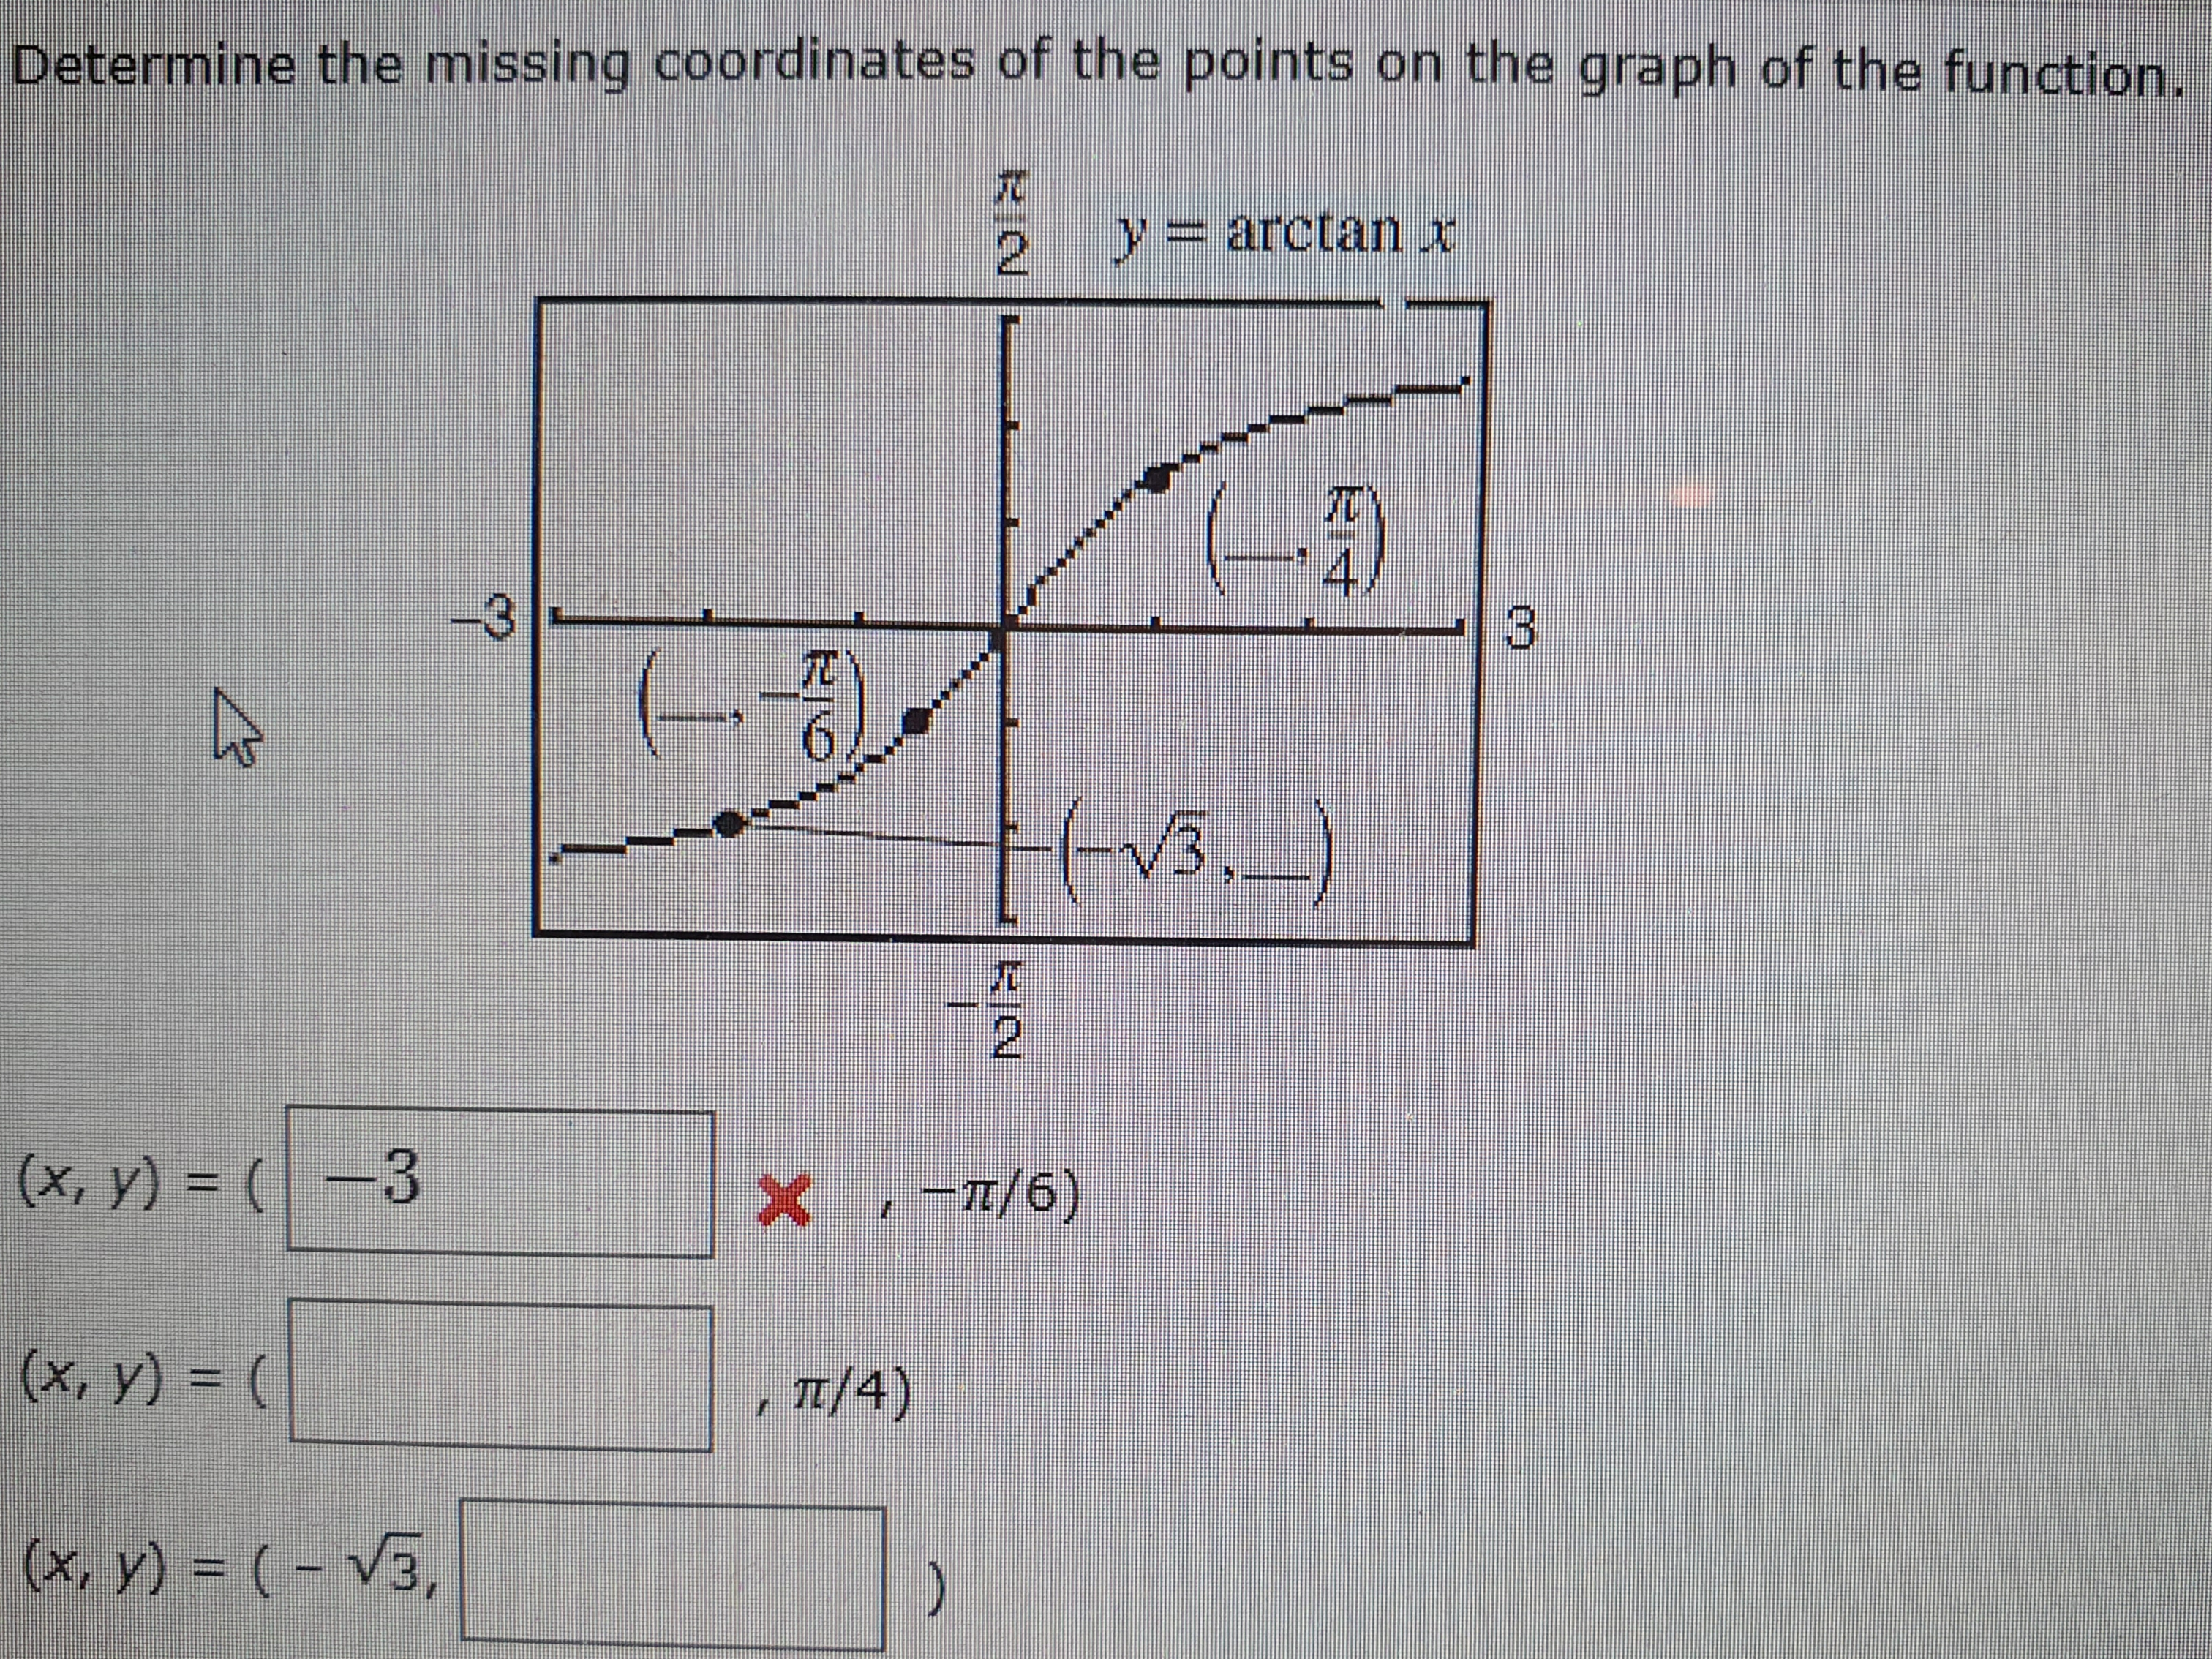 Determine the missing coordinates of the points on the graph of the function. 2 =arctan x 4 3 -3 6 tv3.) (x, y) (3 X /6)  (x, y) ( E/4) (x, y) (-V3,